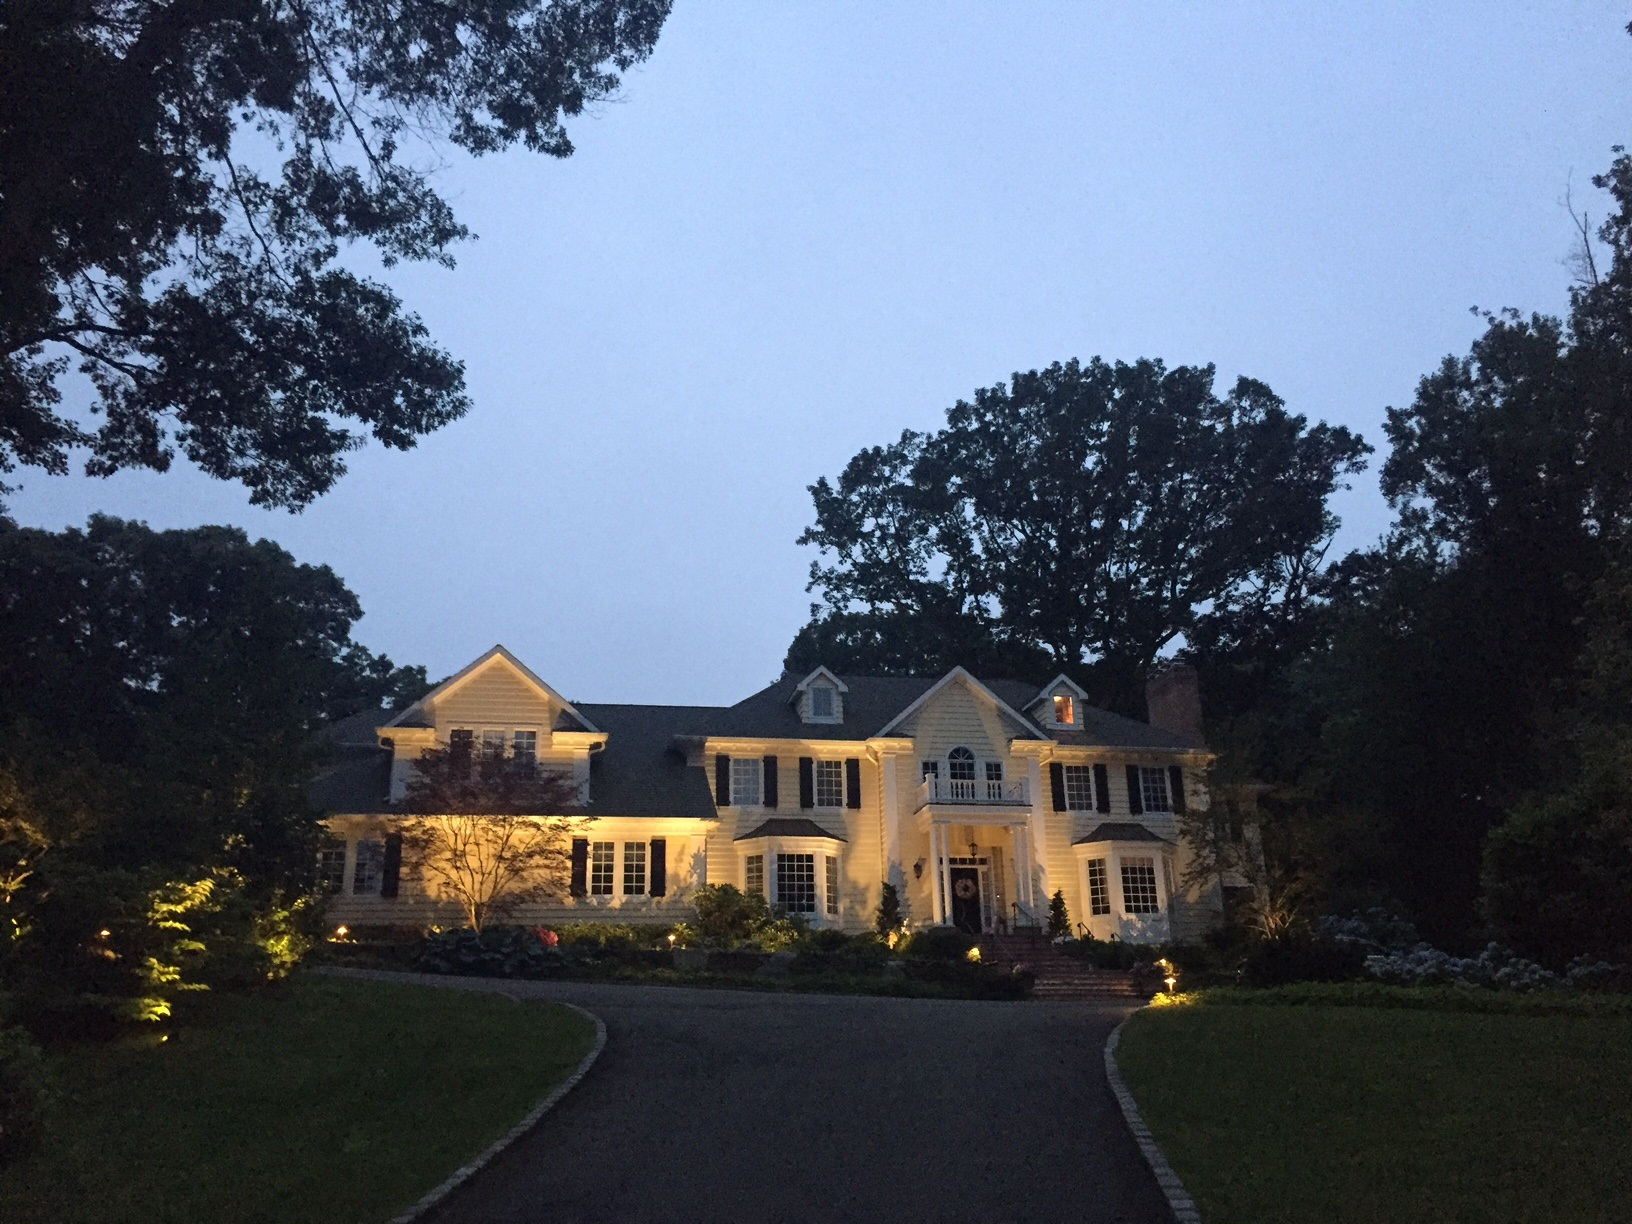 If you already own a halogen outdoor lighting system  don t worry  We can  inspect your system to see if it is a candidate to retrofit your current  system to  Long Island LED Oudoor Lighting  Long Island LED Landscape Lighting . Manor House Outdoor Lighting. Home Design Ideas